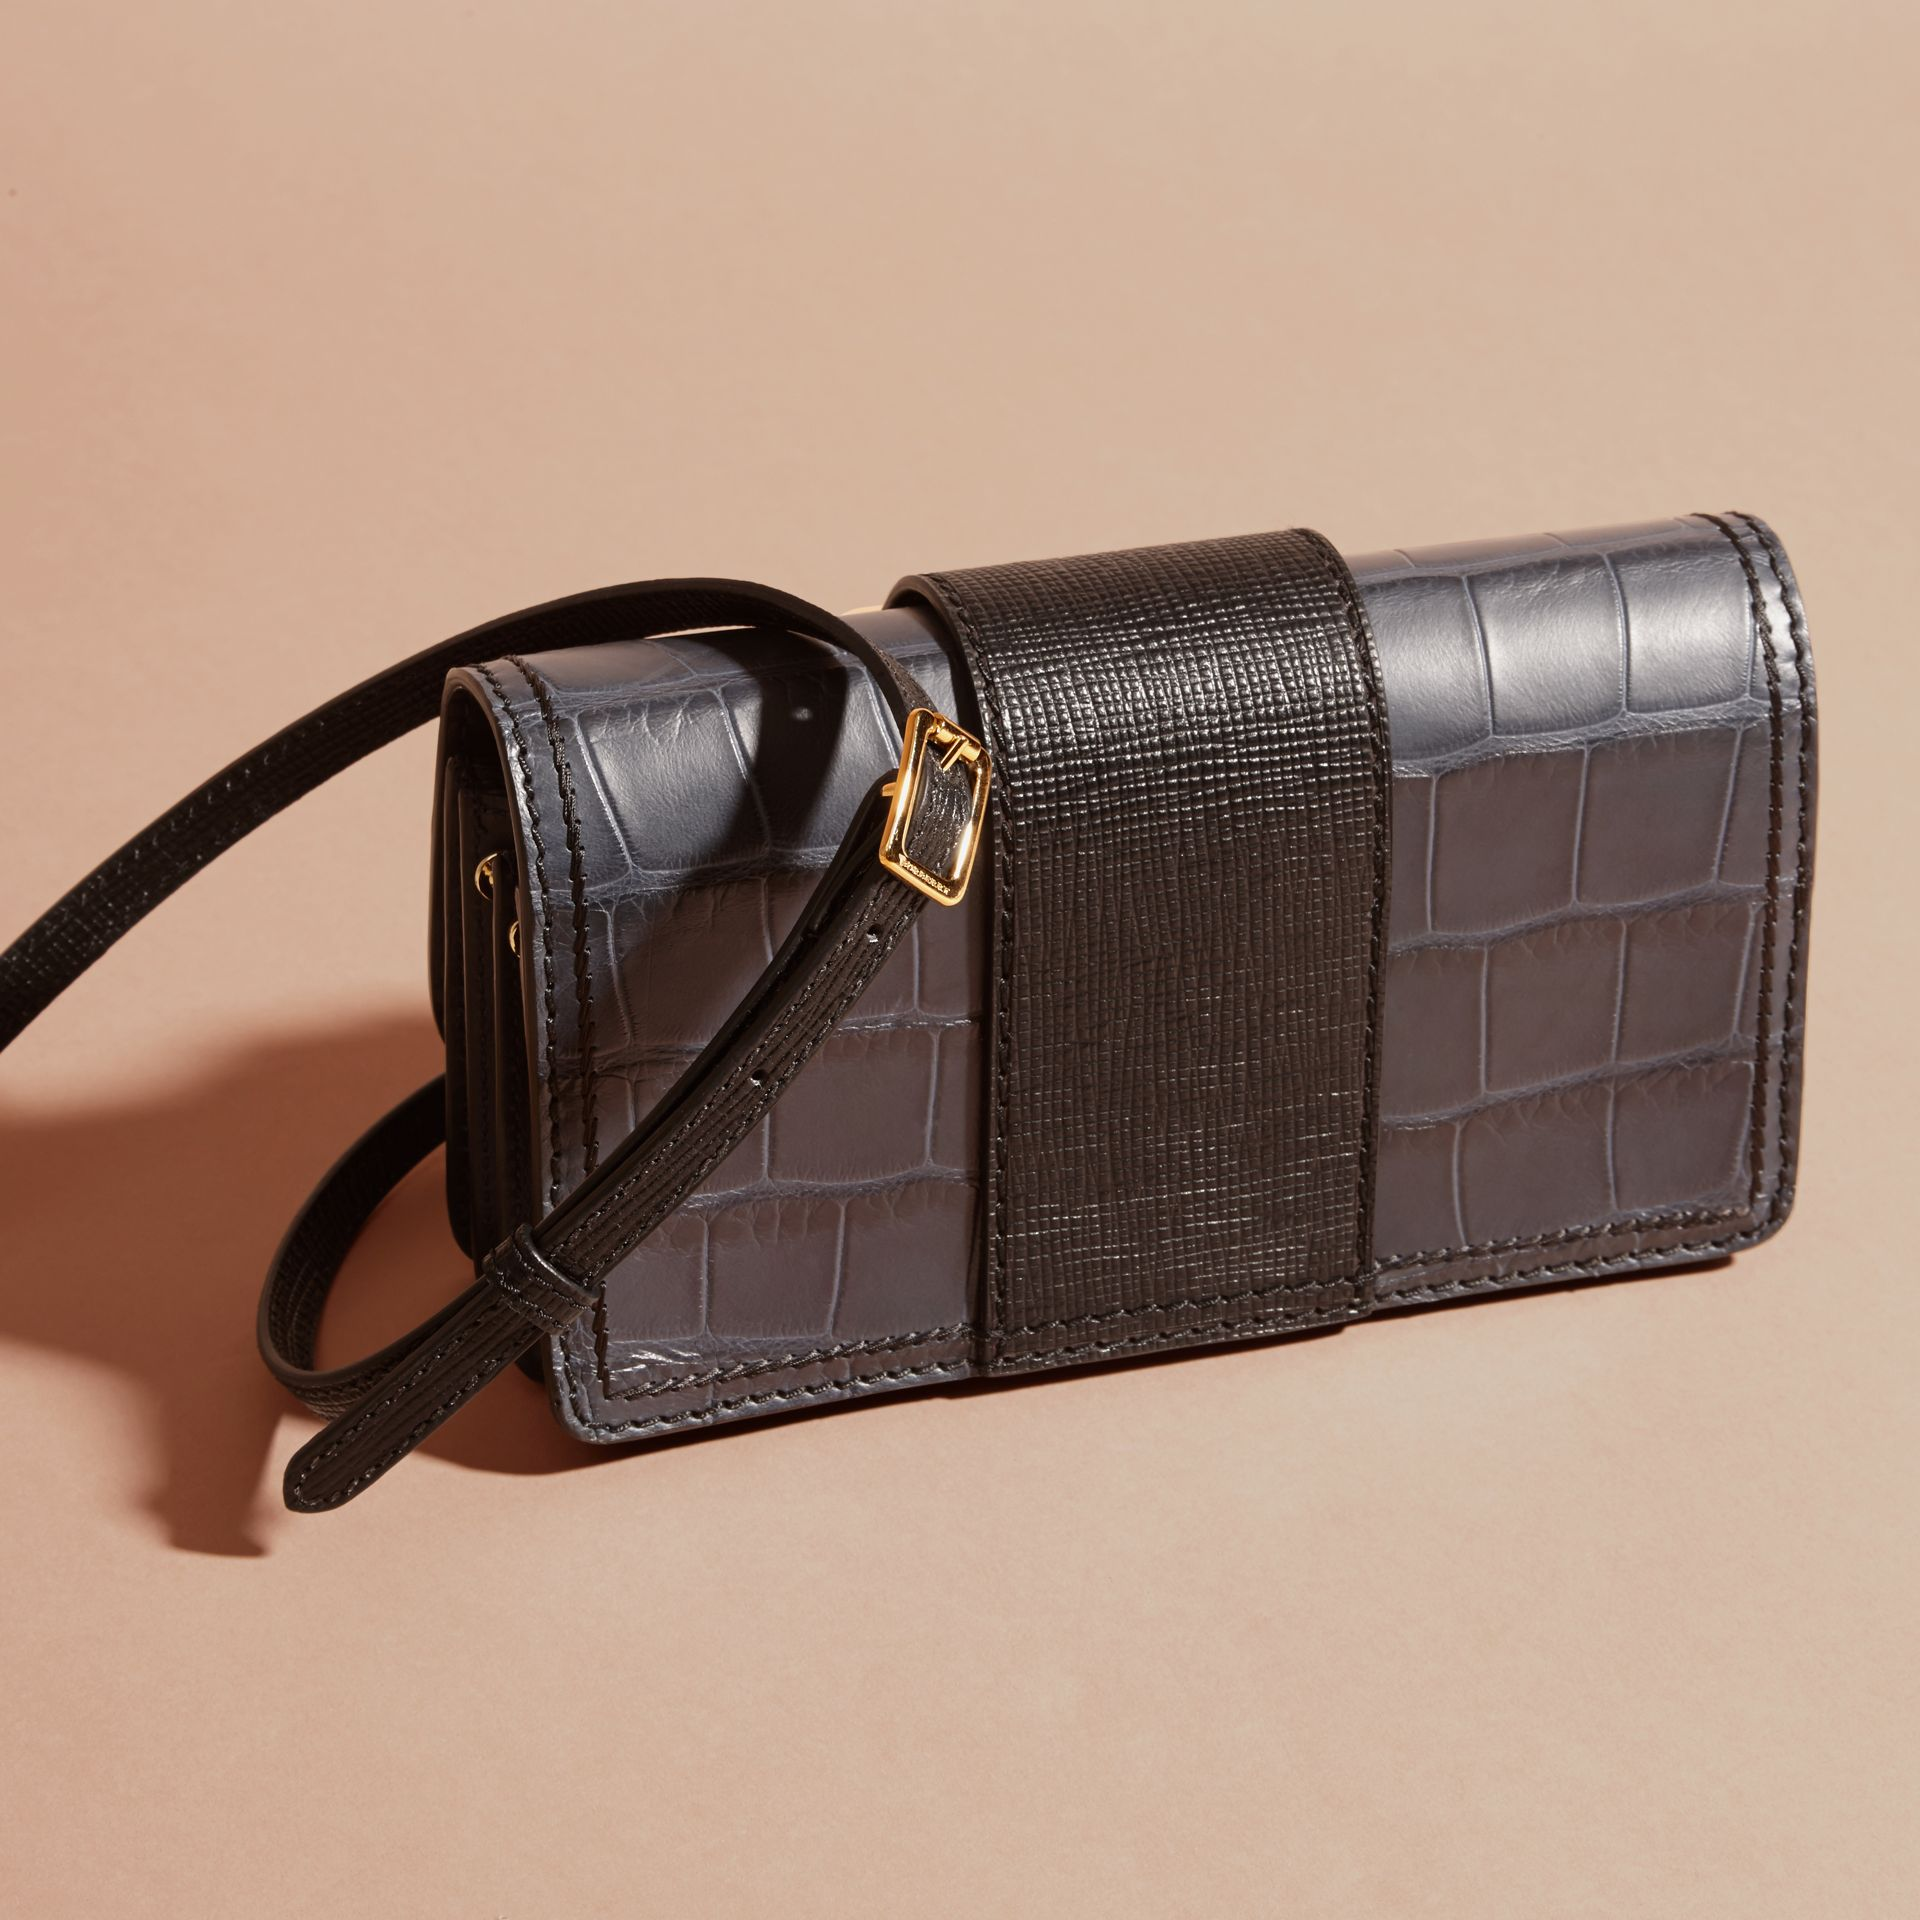 Navy / black The Small Buckle Bag in Alligator and Leather Navy / Black - gallery image 5